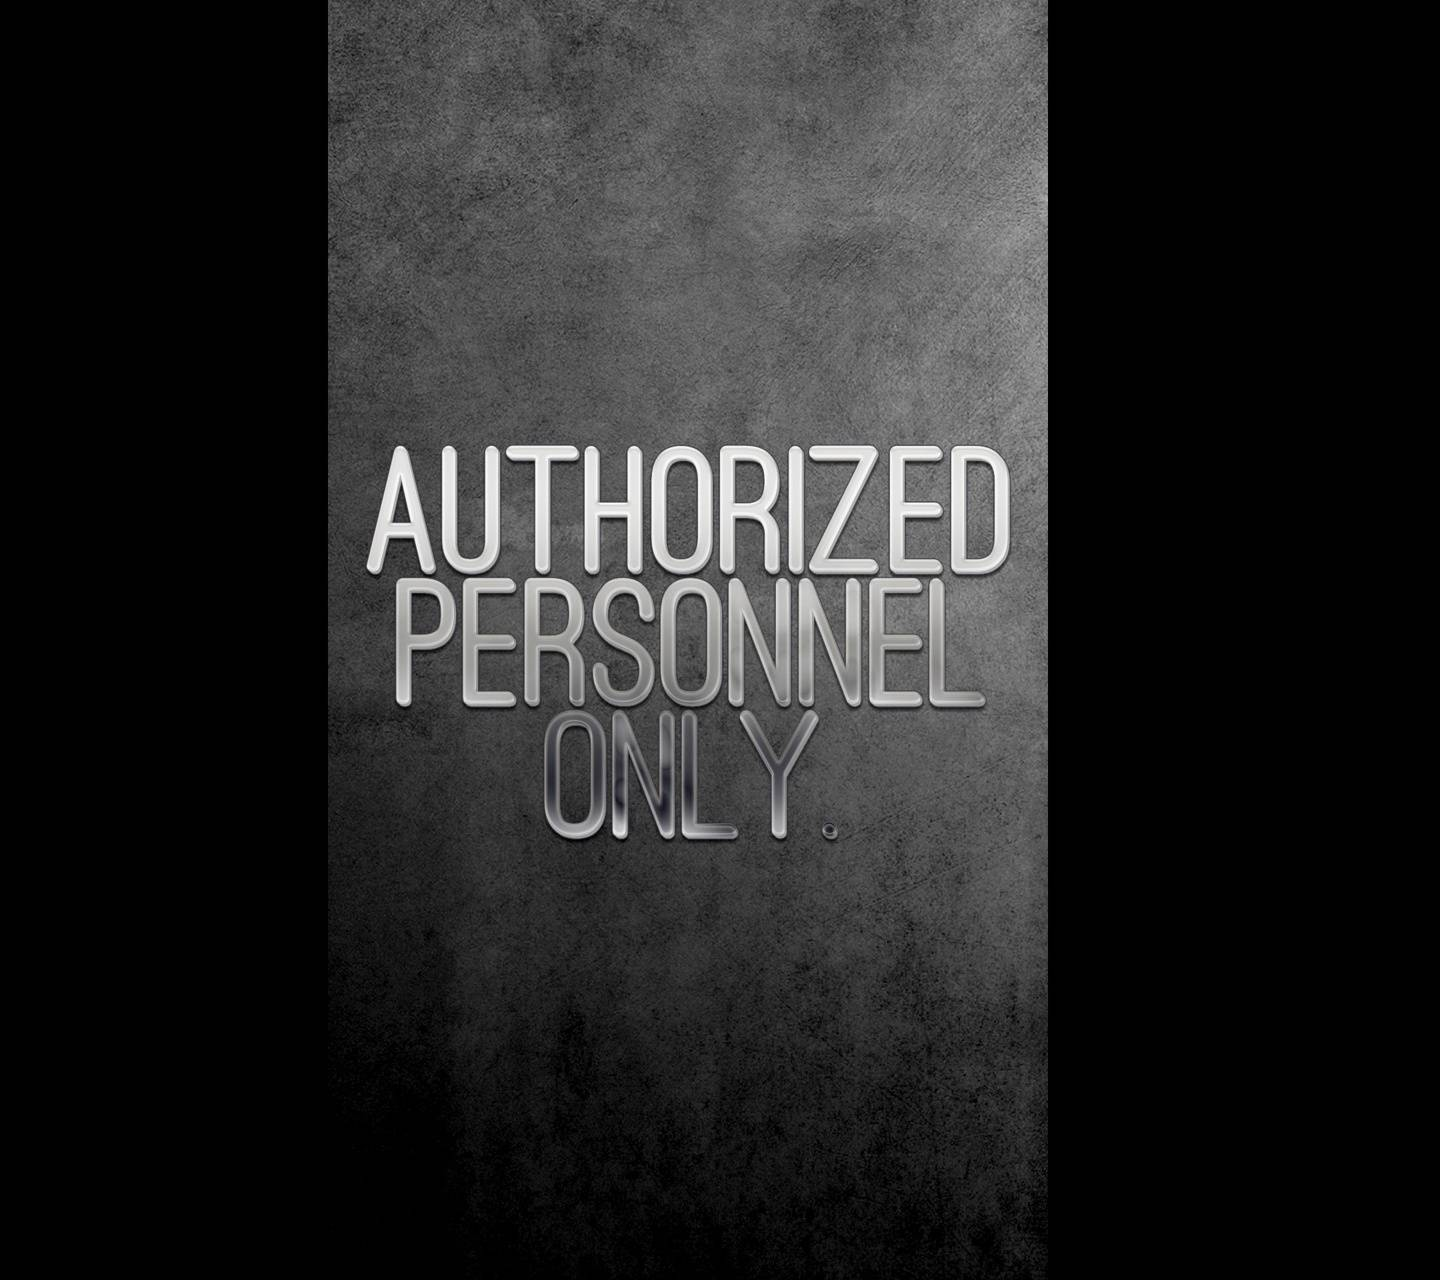 Personnel Only